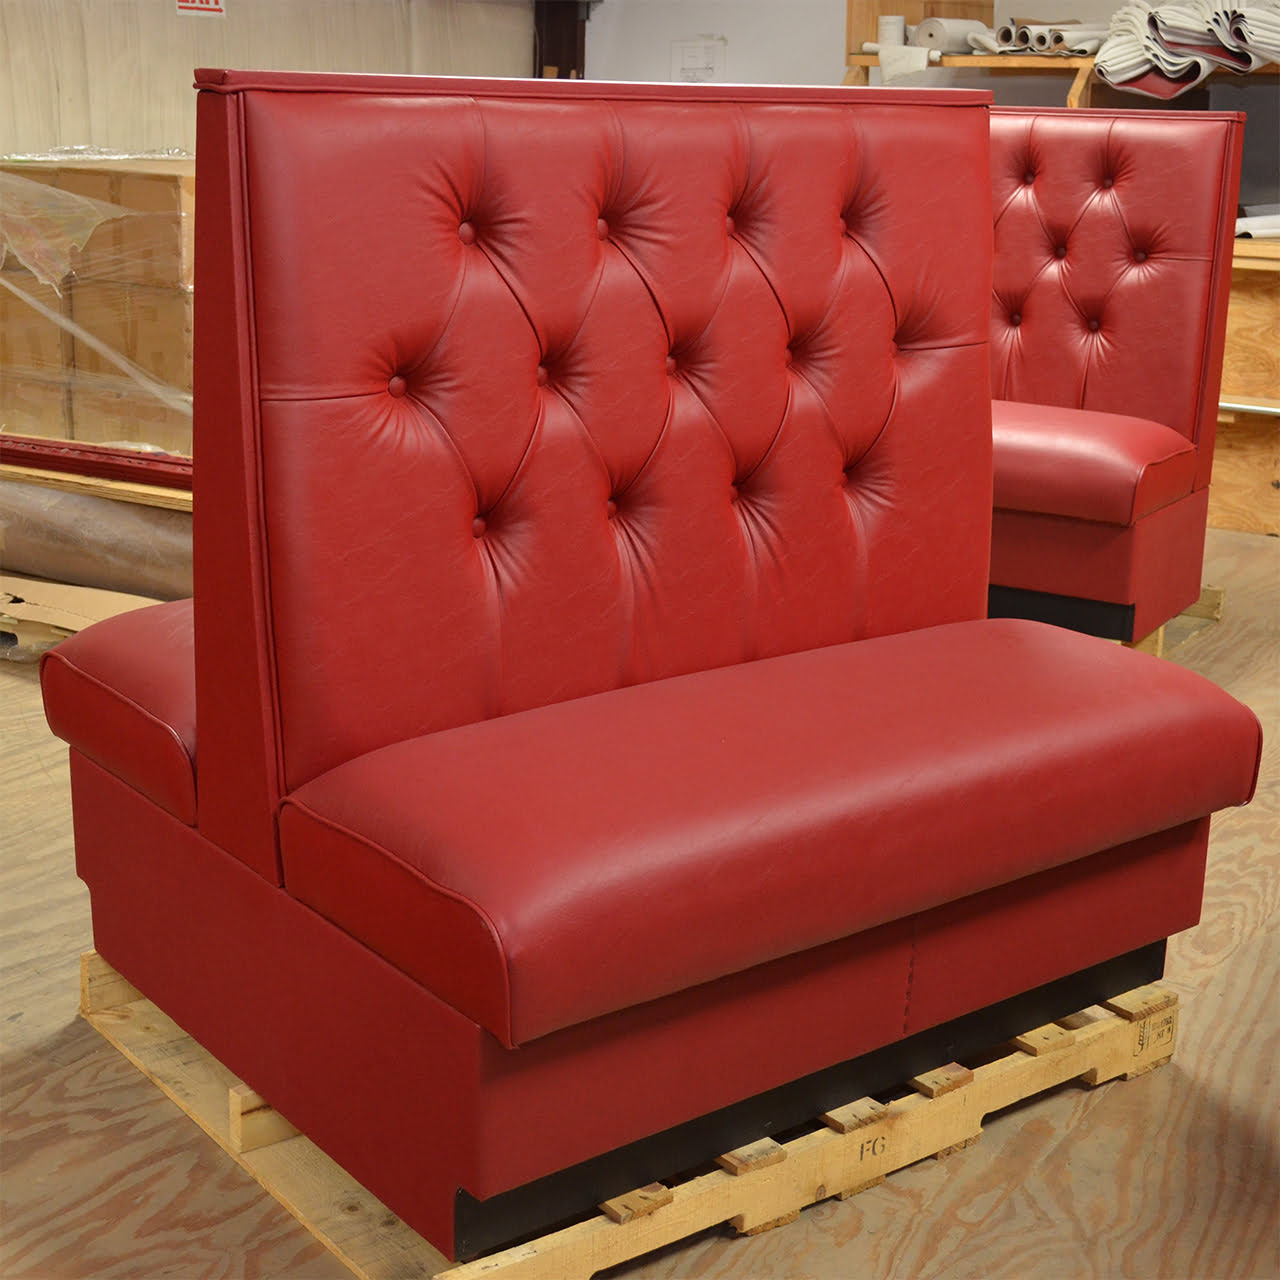 tufted-red.jpg